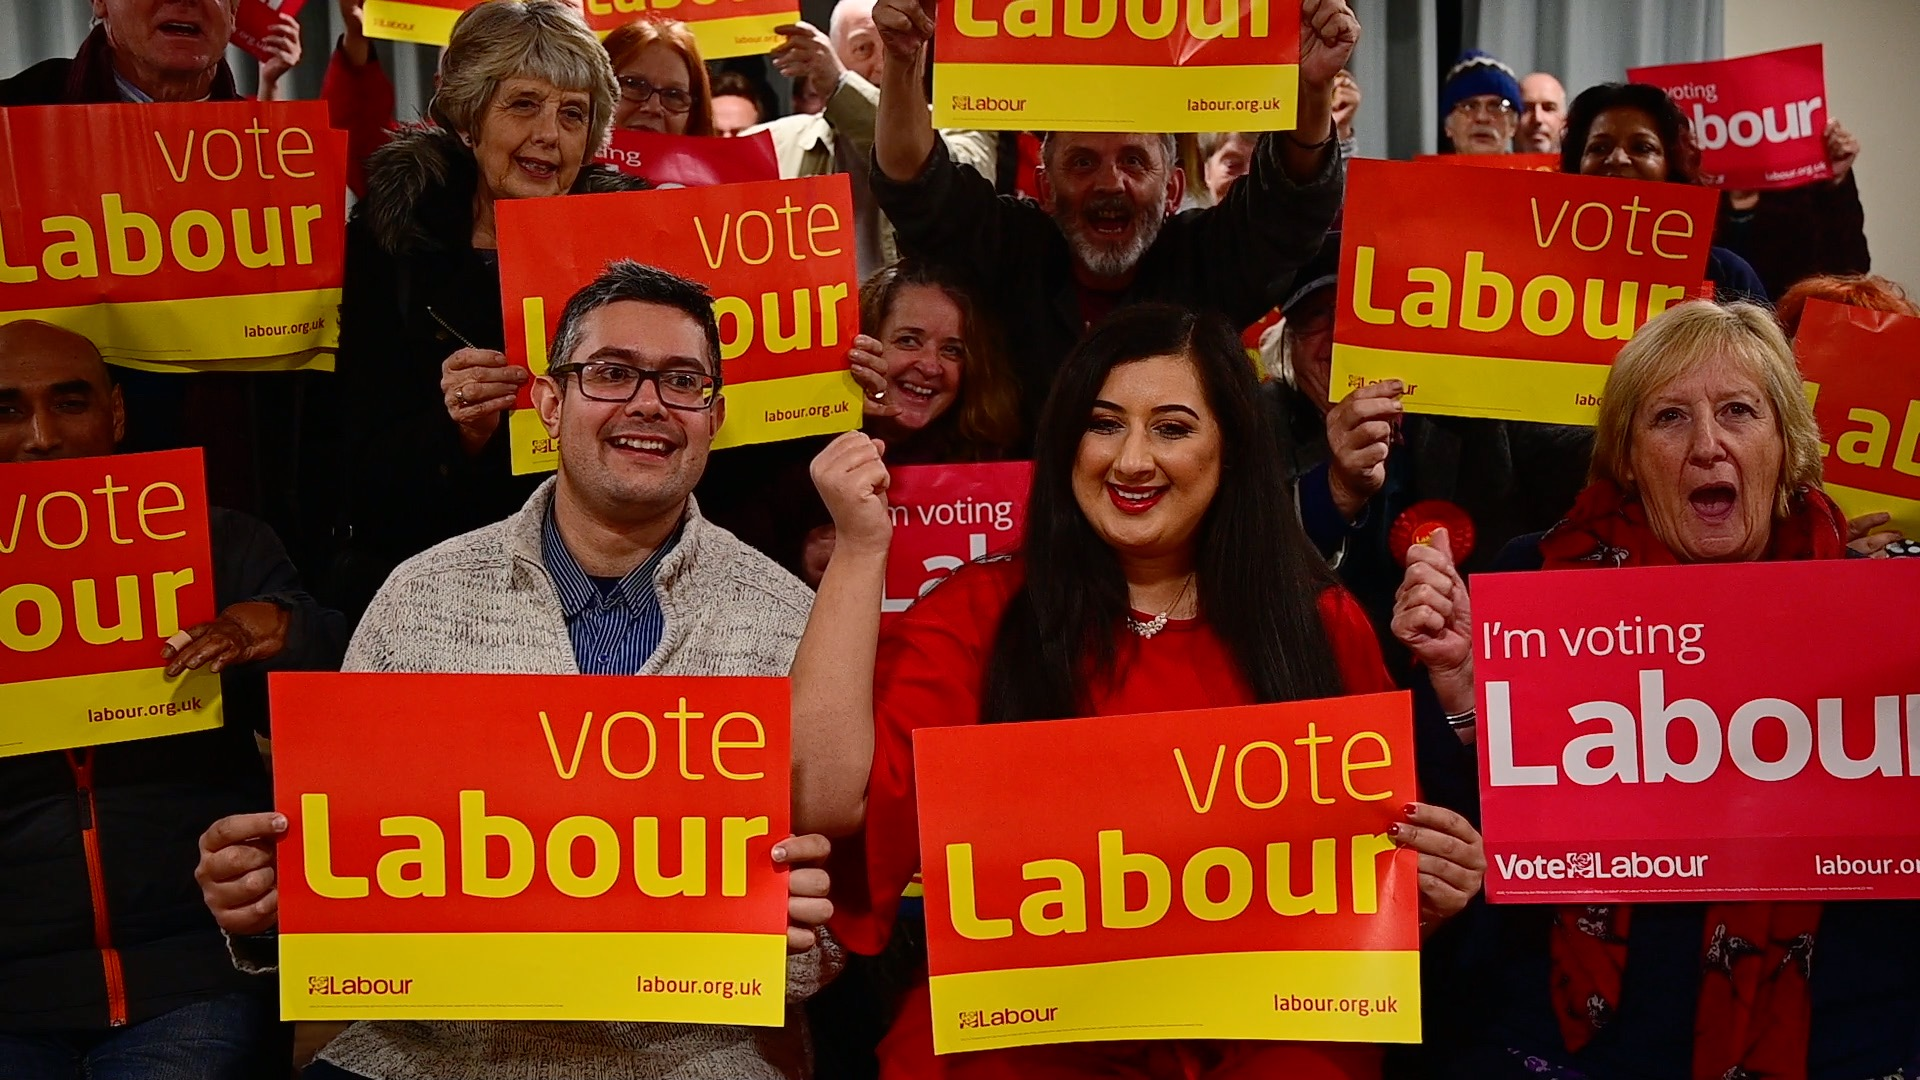 Hememl Labour Party Campaign Video for the 2019 General Election | Eric Johnson Photography & Videography